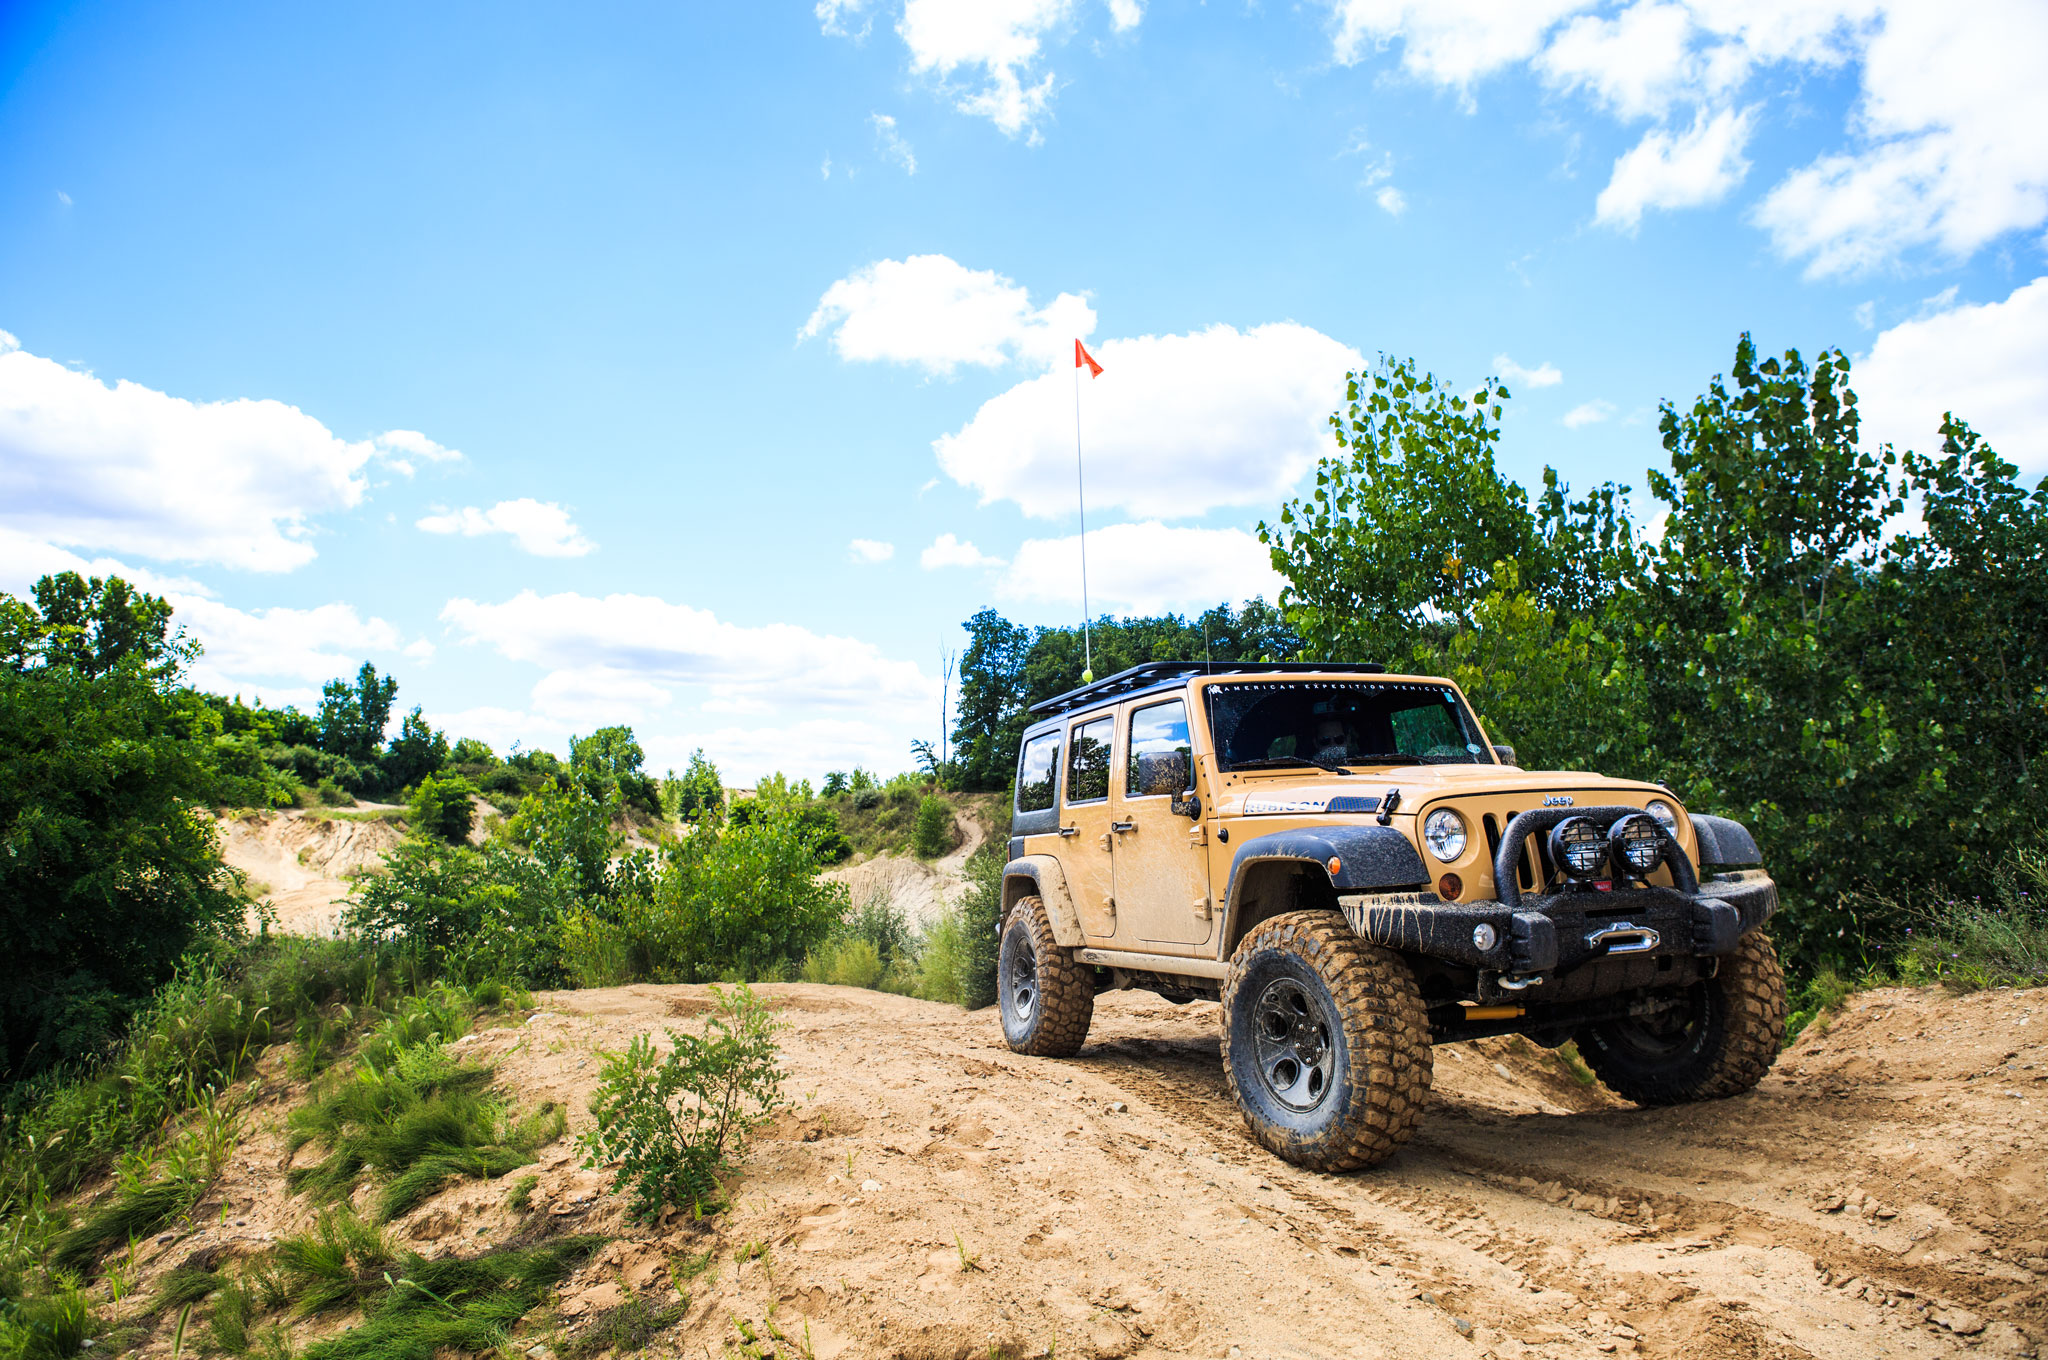 Jeep Jk Tires >> AEV Jeep Wrangler JK350 Review - Automobile Magazine